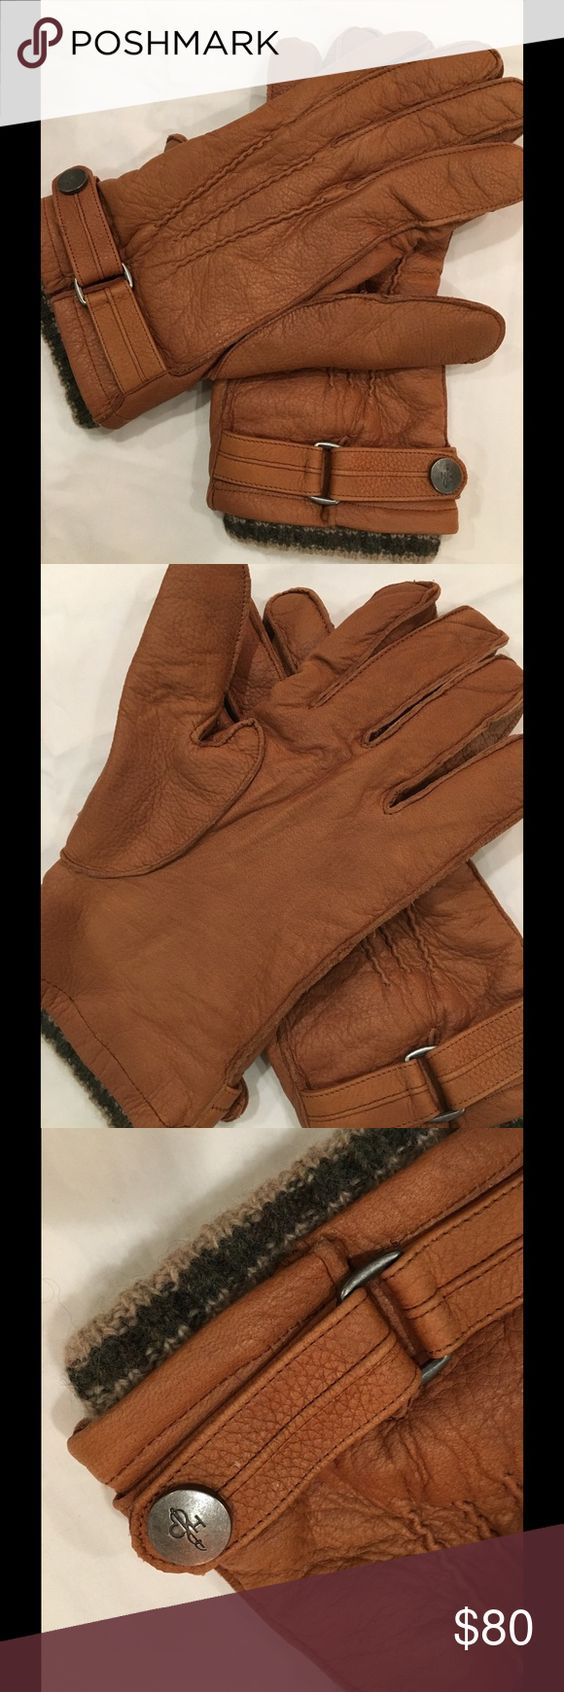 Very mens gloves -  Reduced Cole Haan Leather Gloves Cole Haan Men S Leather Gloves Buttery Soft Deerskin Leather With Wool Lining Worn Maybe Twice Very Reasonably